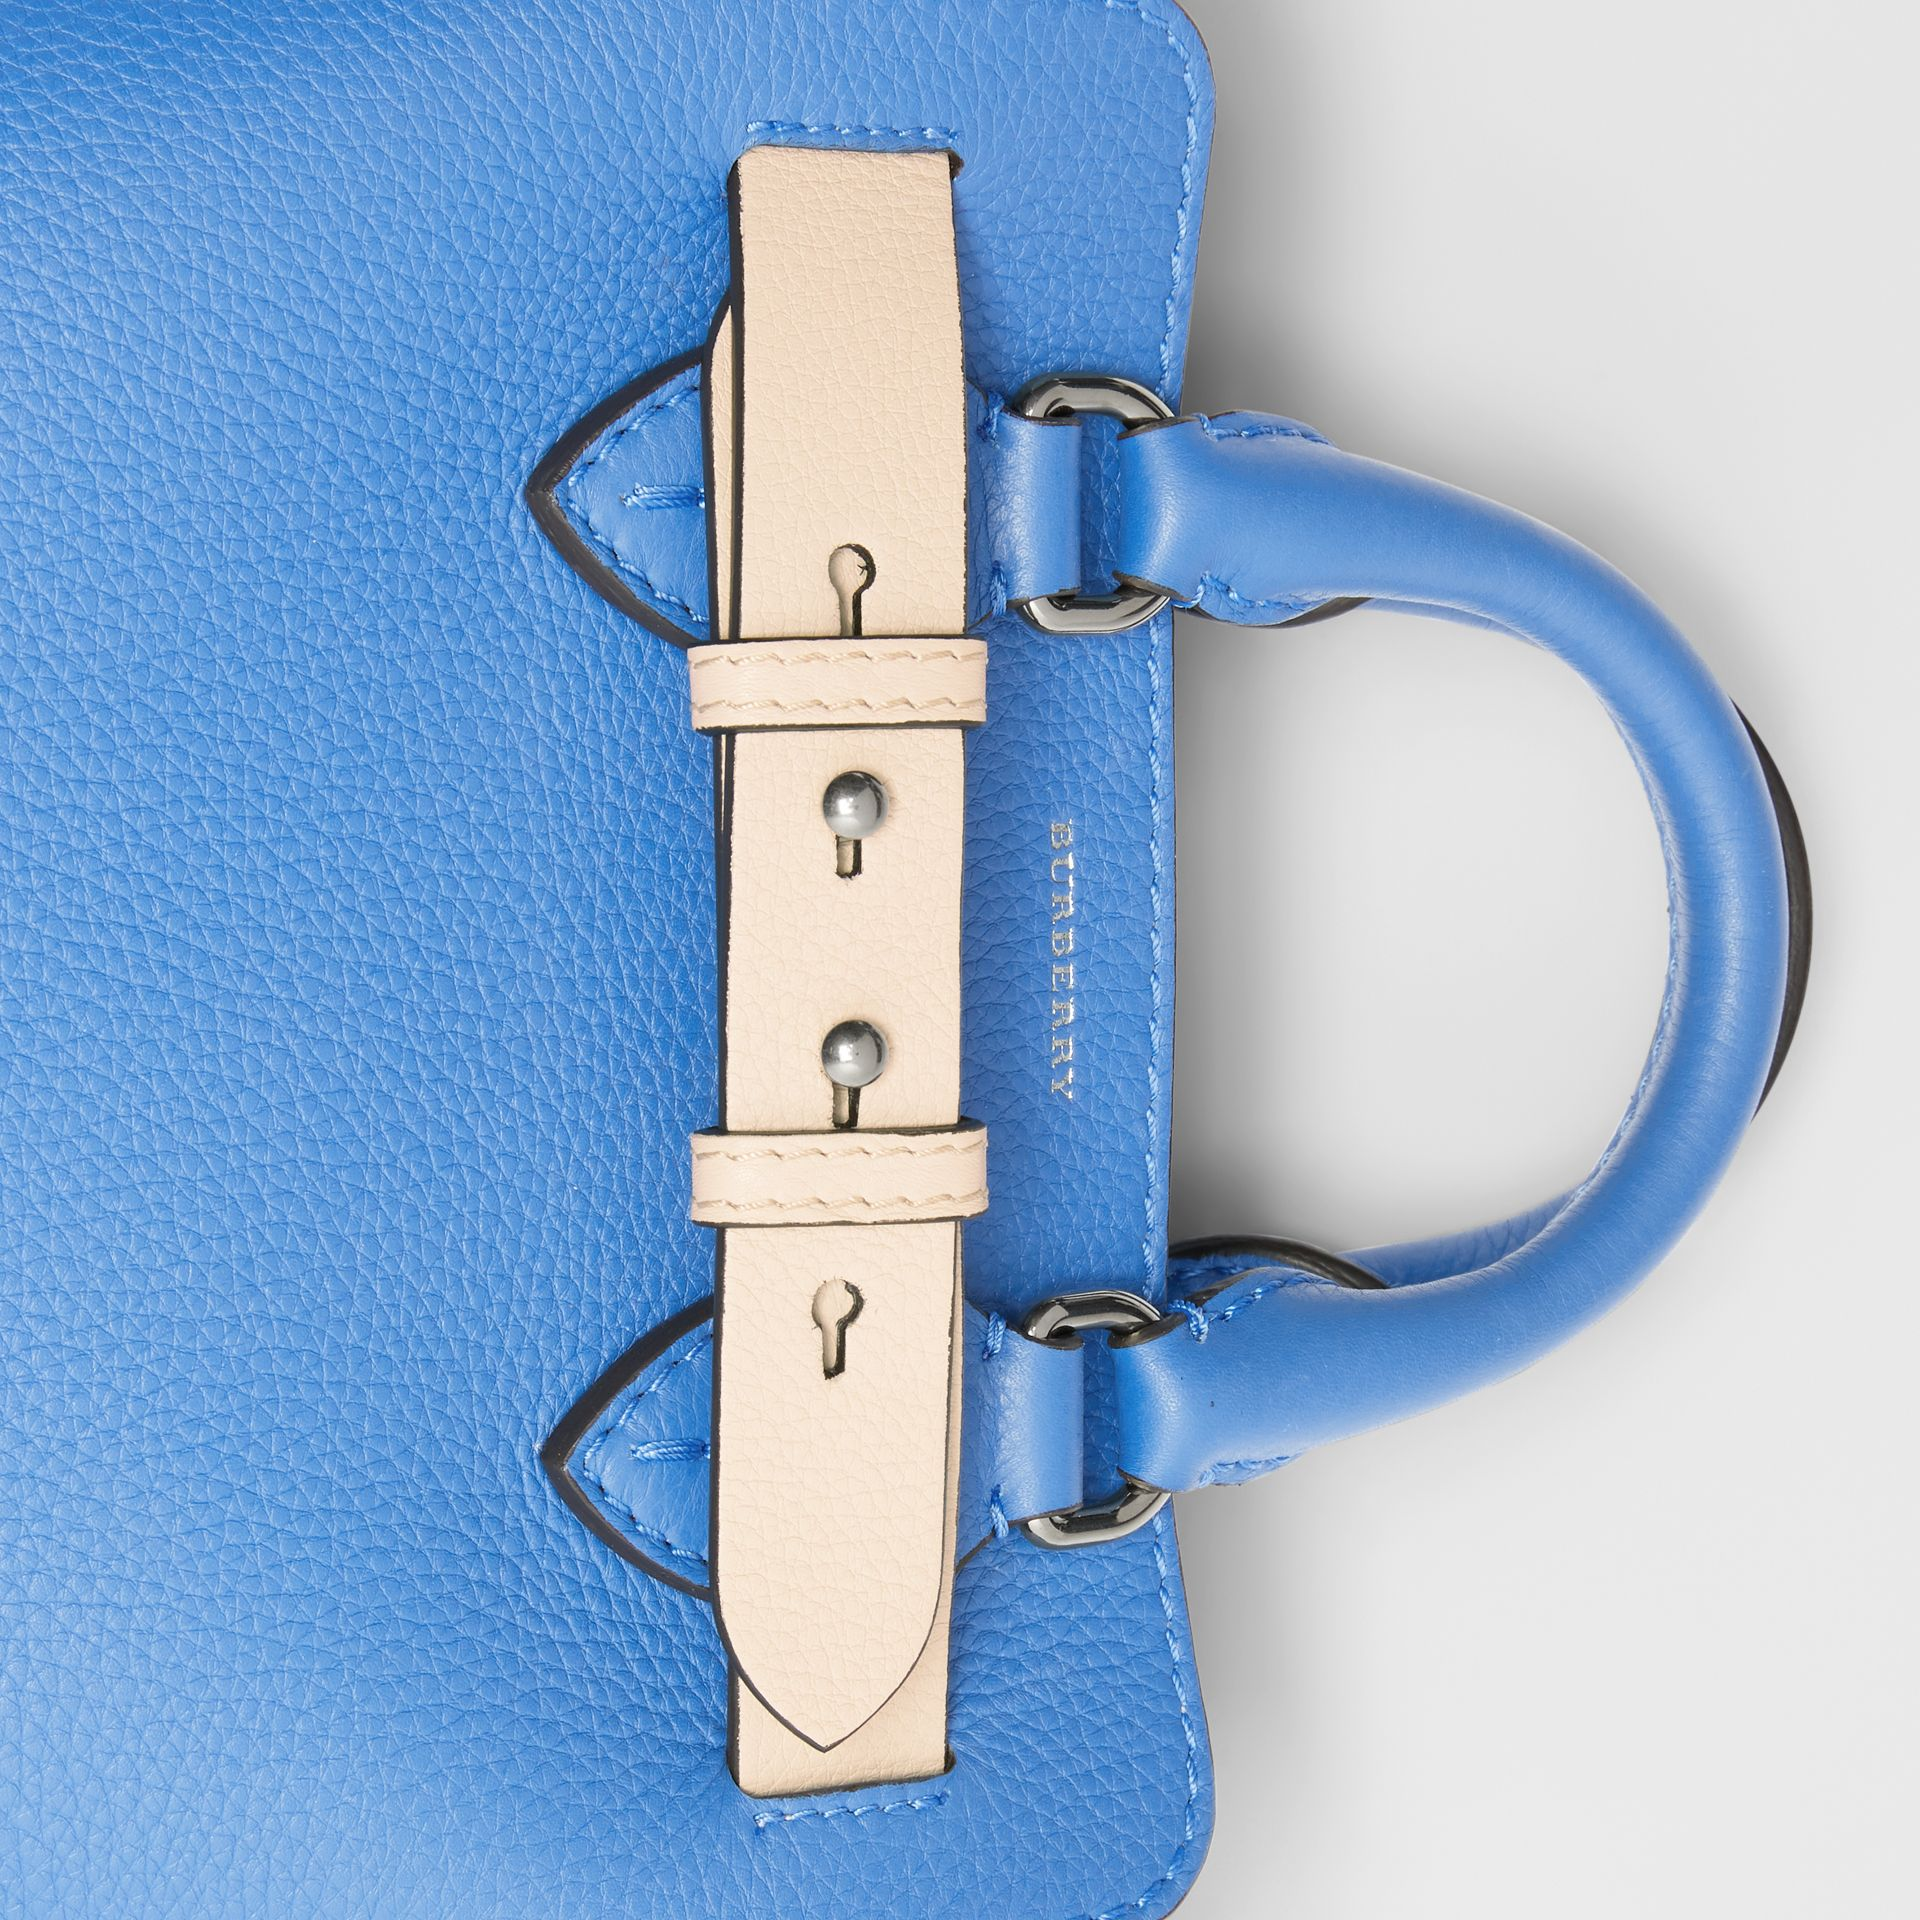 Borsa The Belt mini in pelle (Blu Ortensia) - Donna | Burberry - immagine della galleria 1